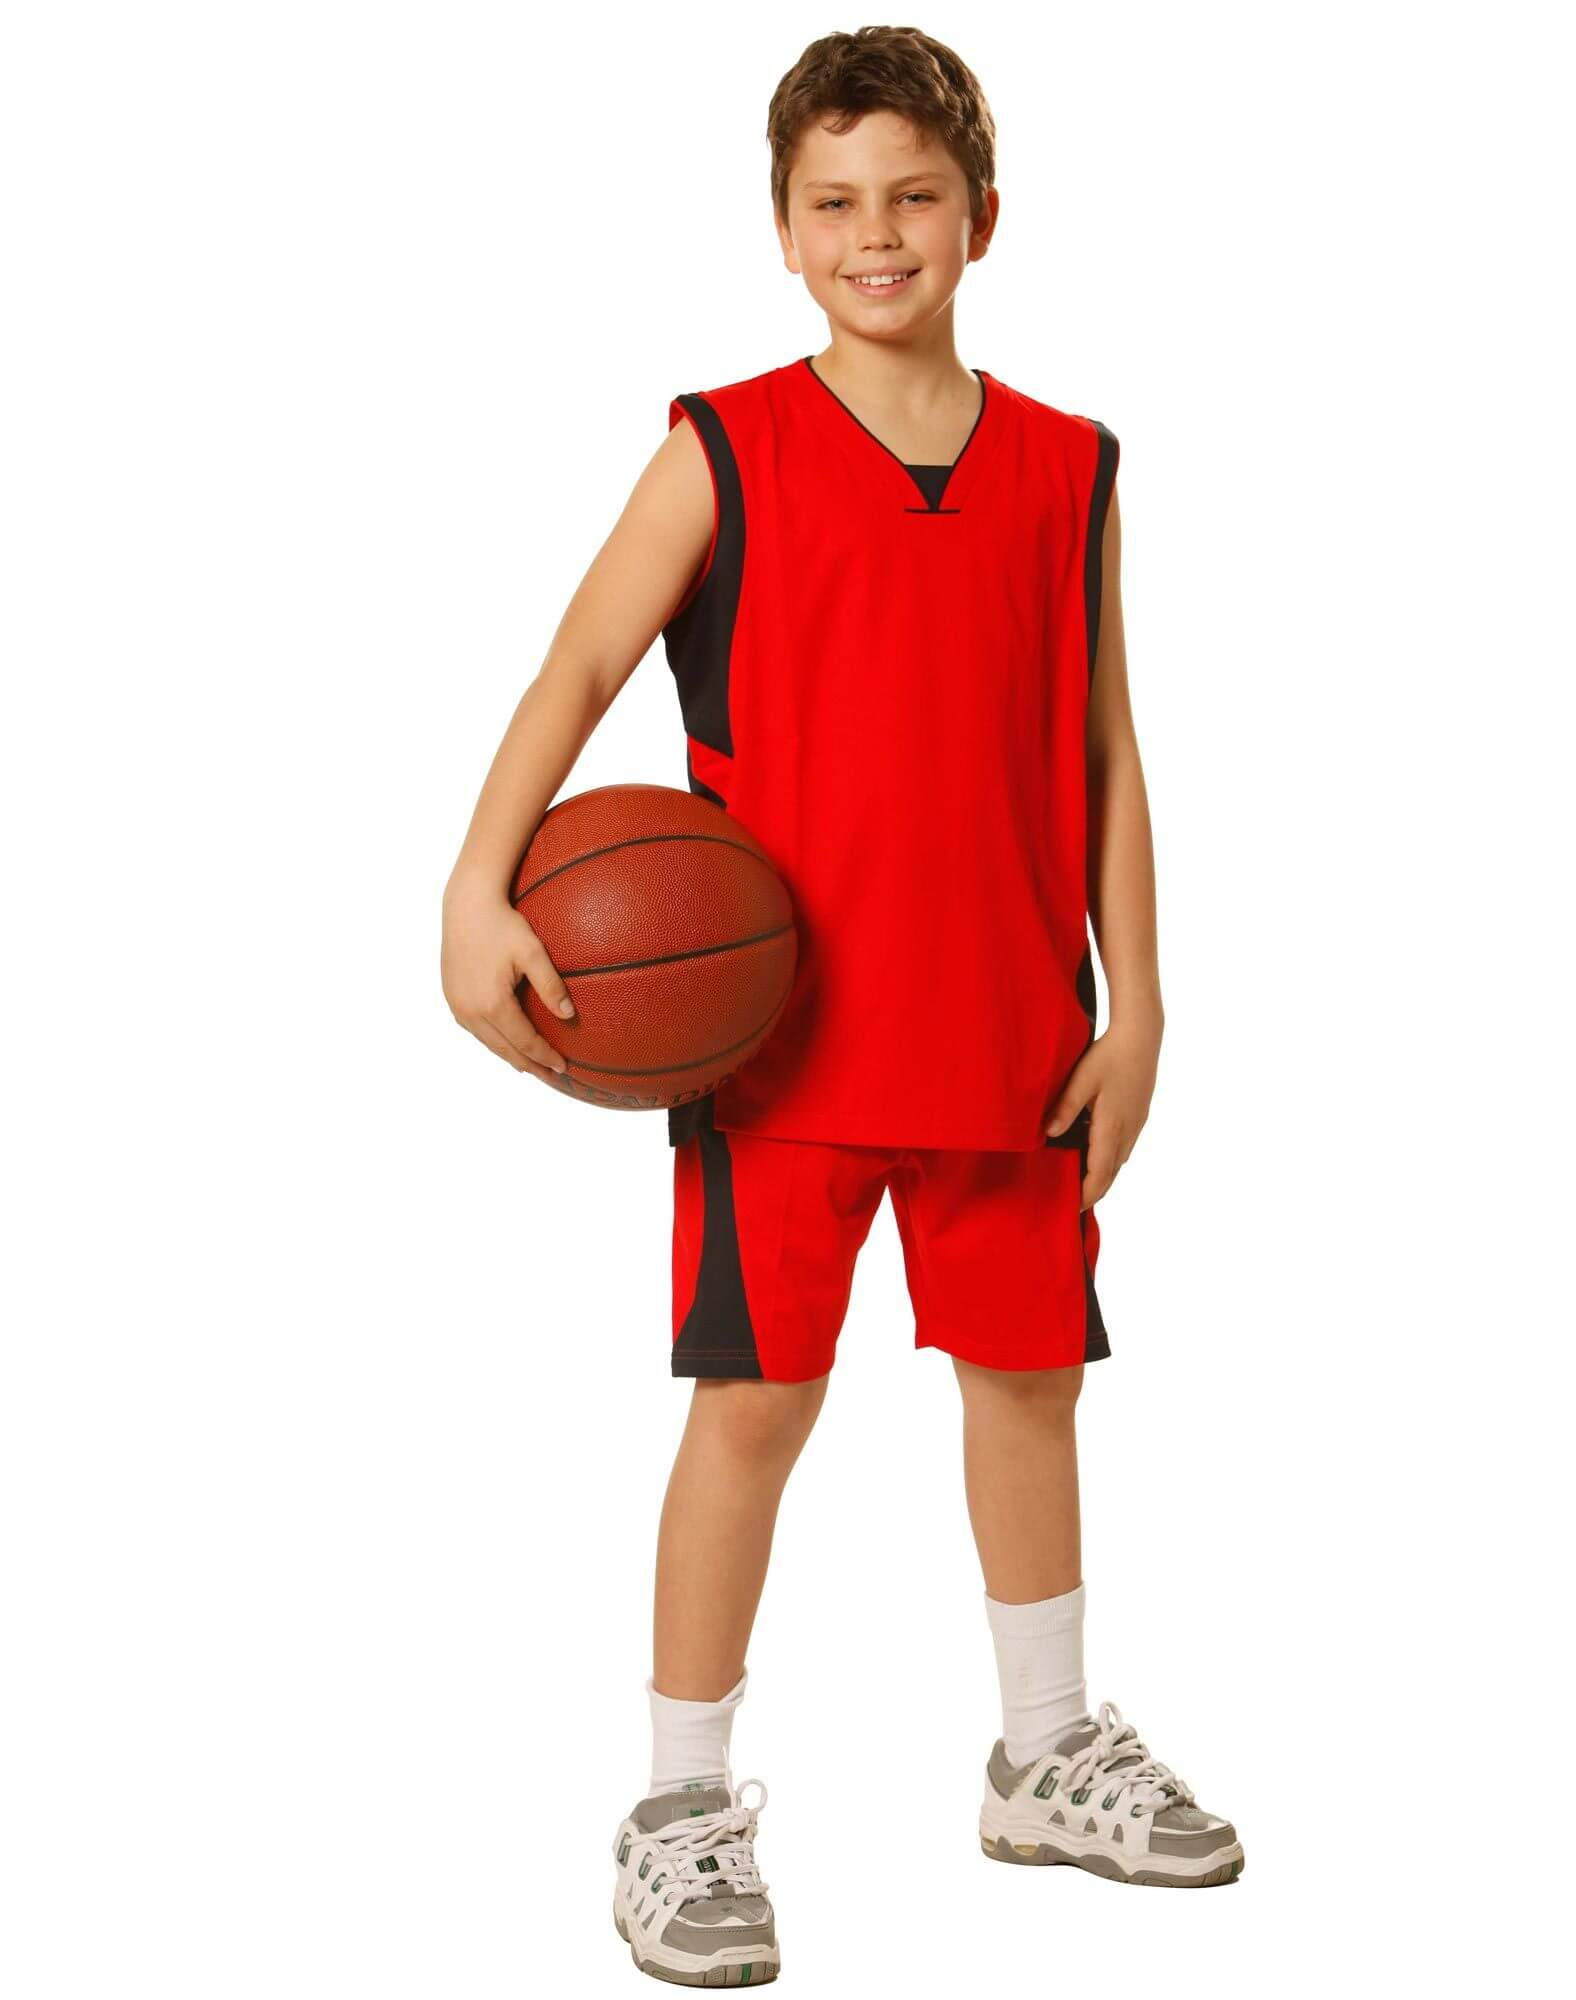 Kids Basketball Jerseys Manufacturers in Sweden